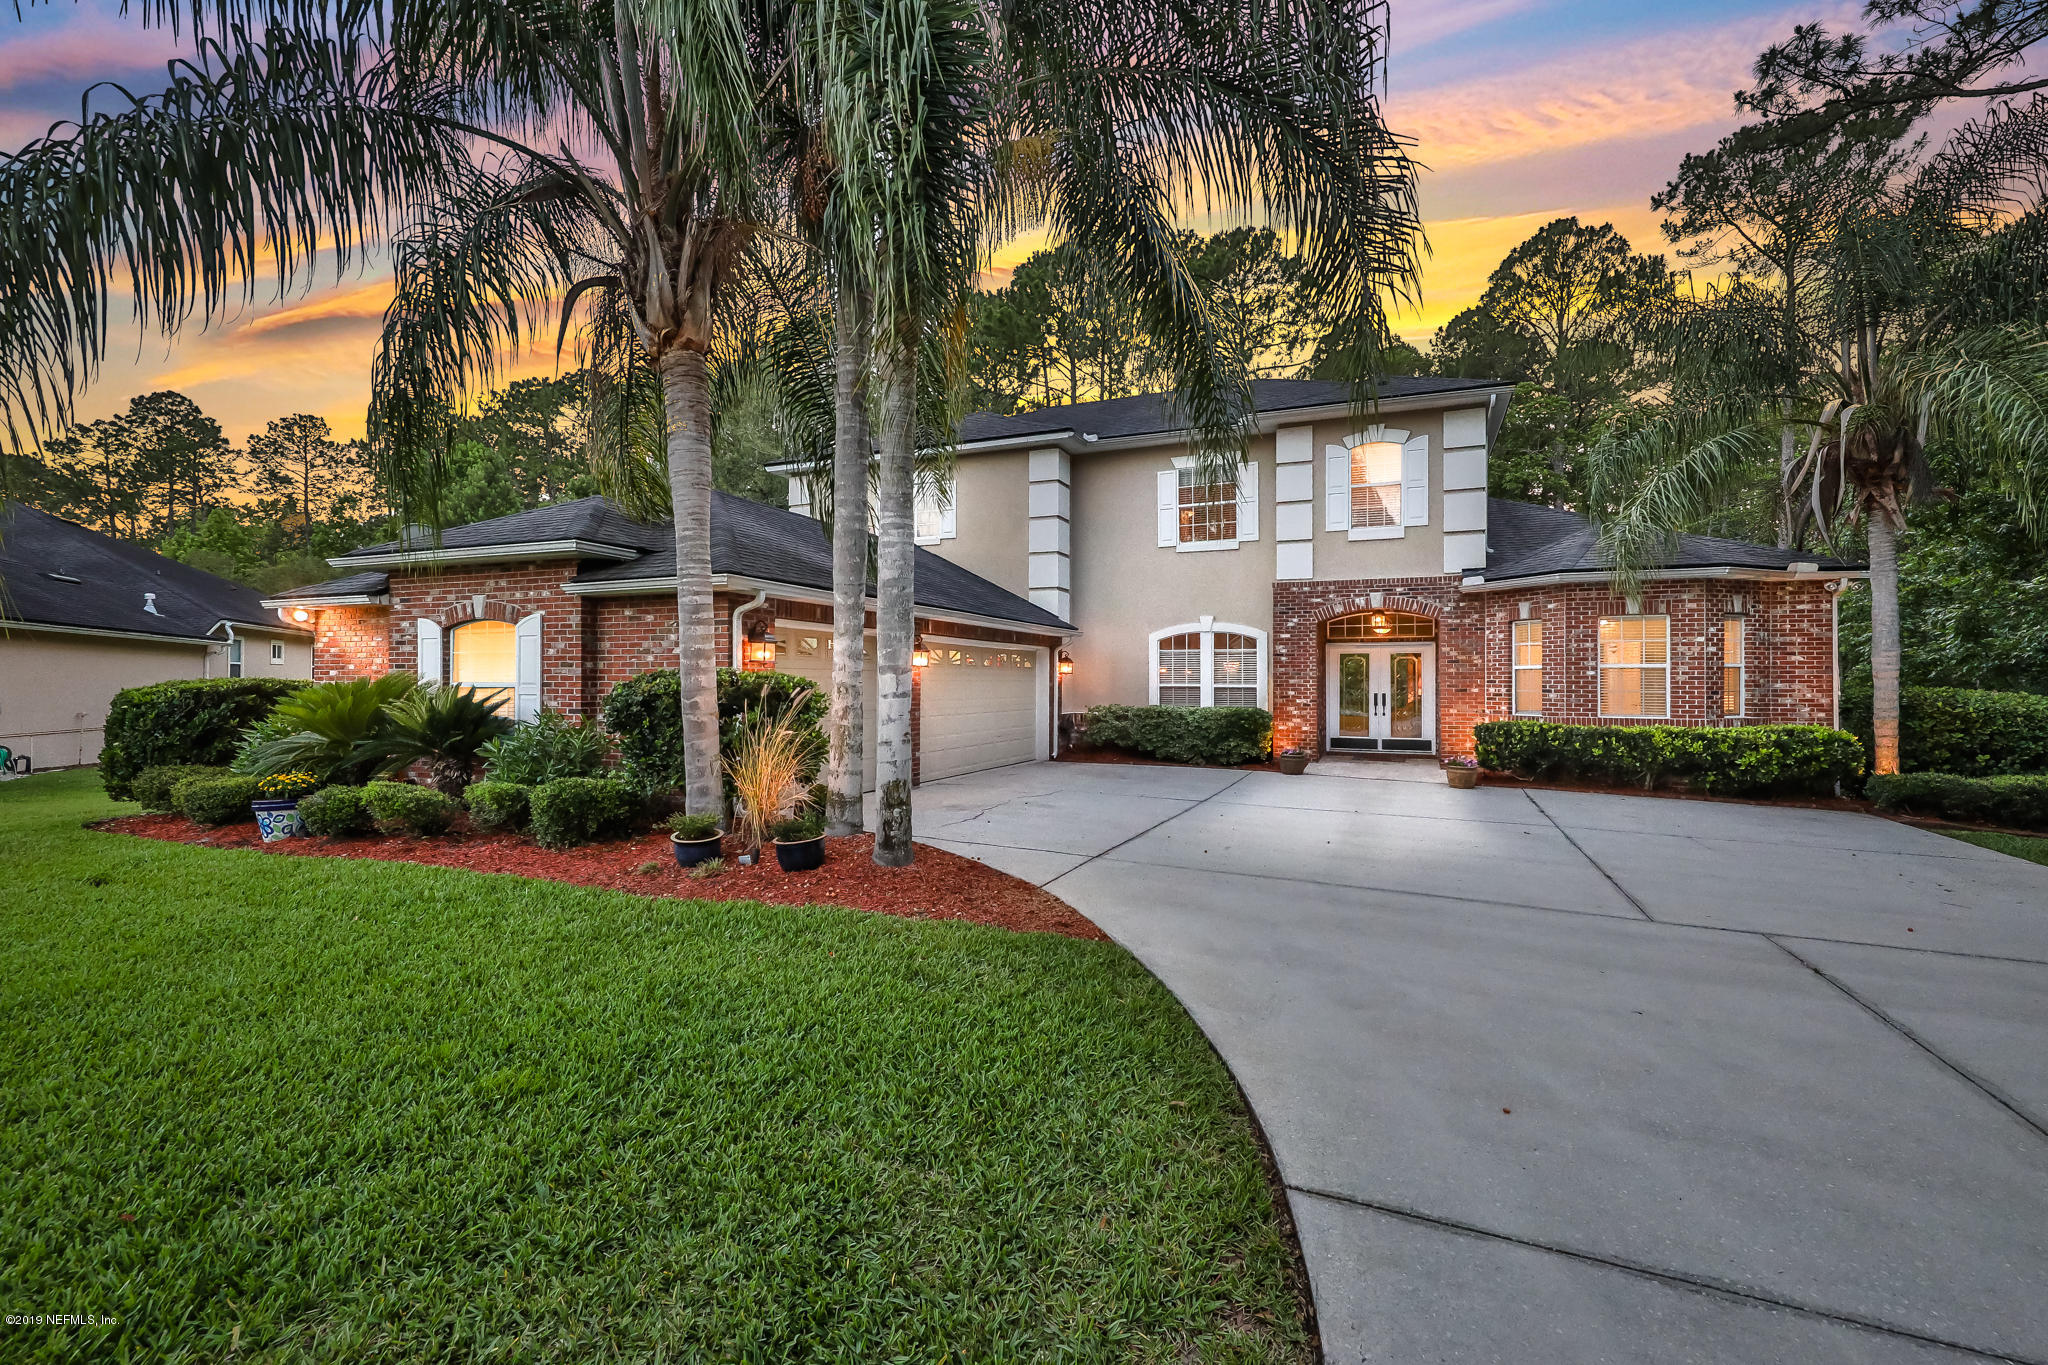 374 SWEETBRIER BRANCH, ST JOHNS, FLORIDA 32259, 5 Bedrooms Bedrooms, ,3 BathroomsBathrooms,Residential - single family,For sale,SWEETBRIER BRANCH,995476